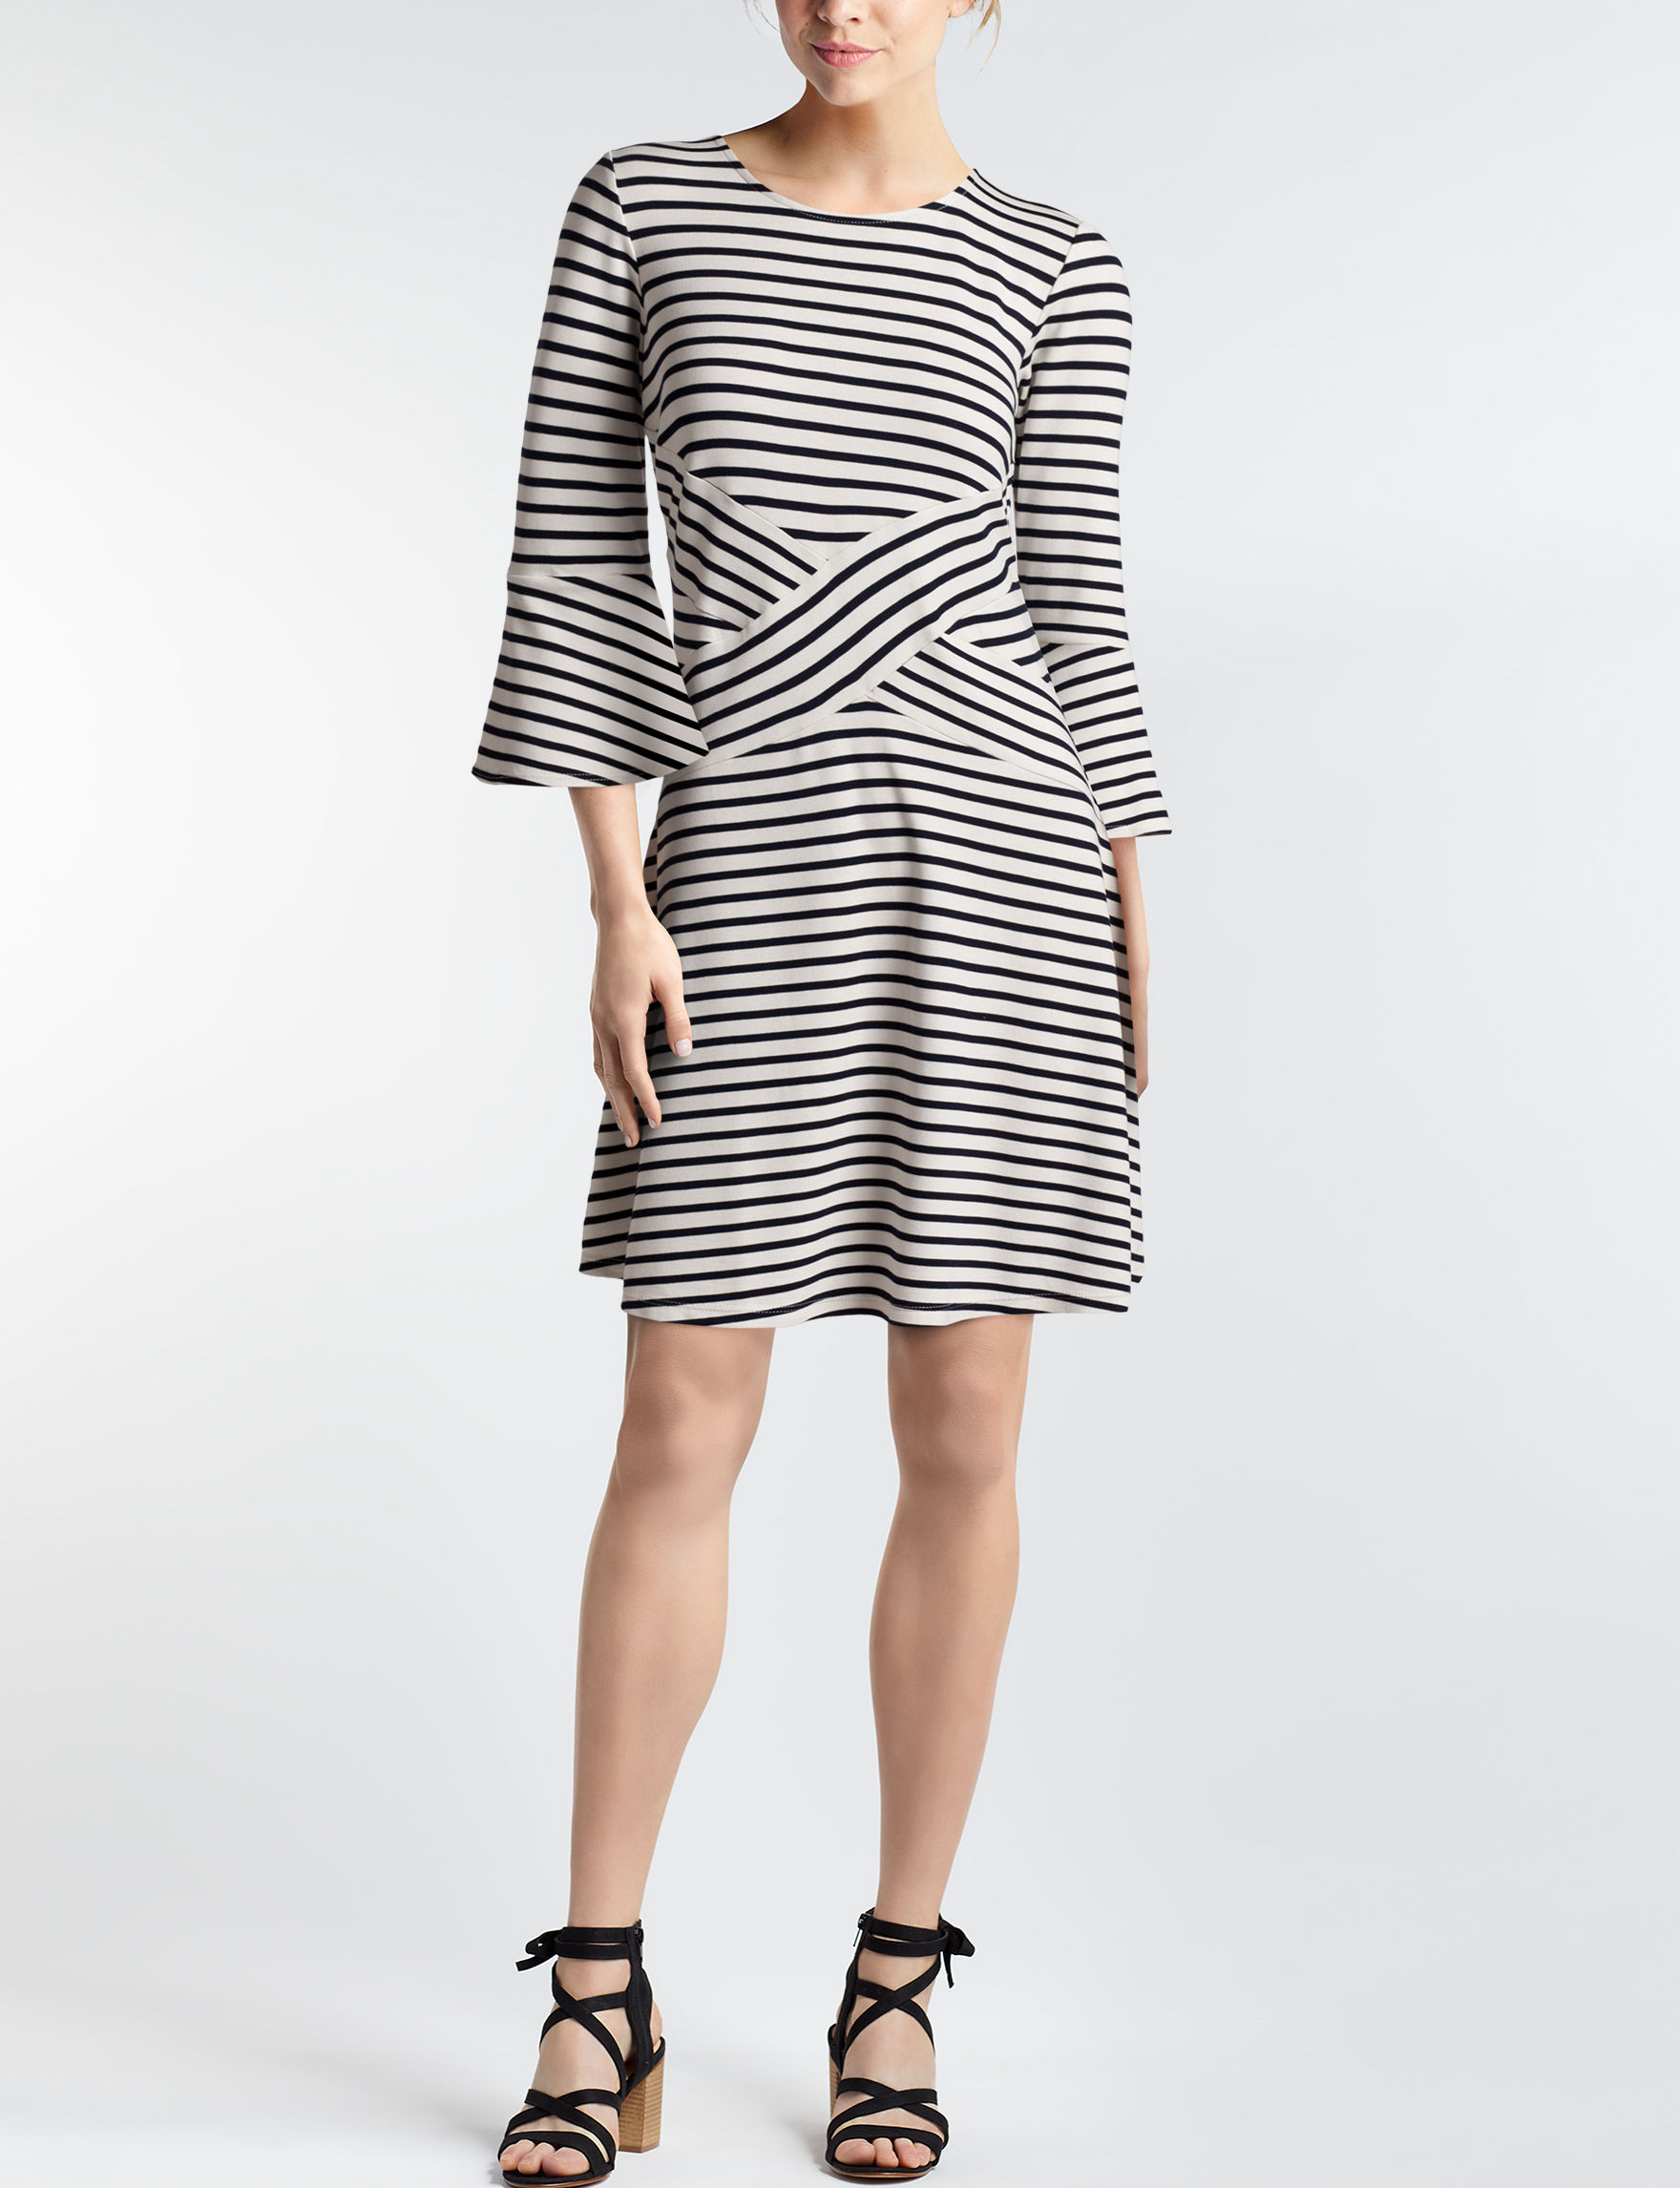 Beige by ECI White / Black Everyday & Casual A-line Dresses